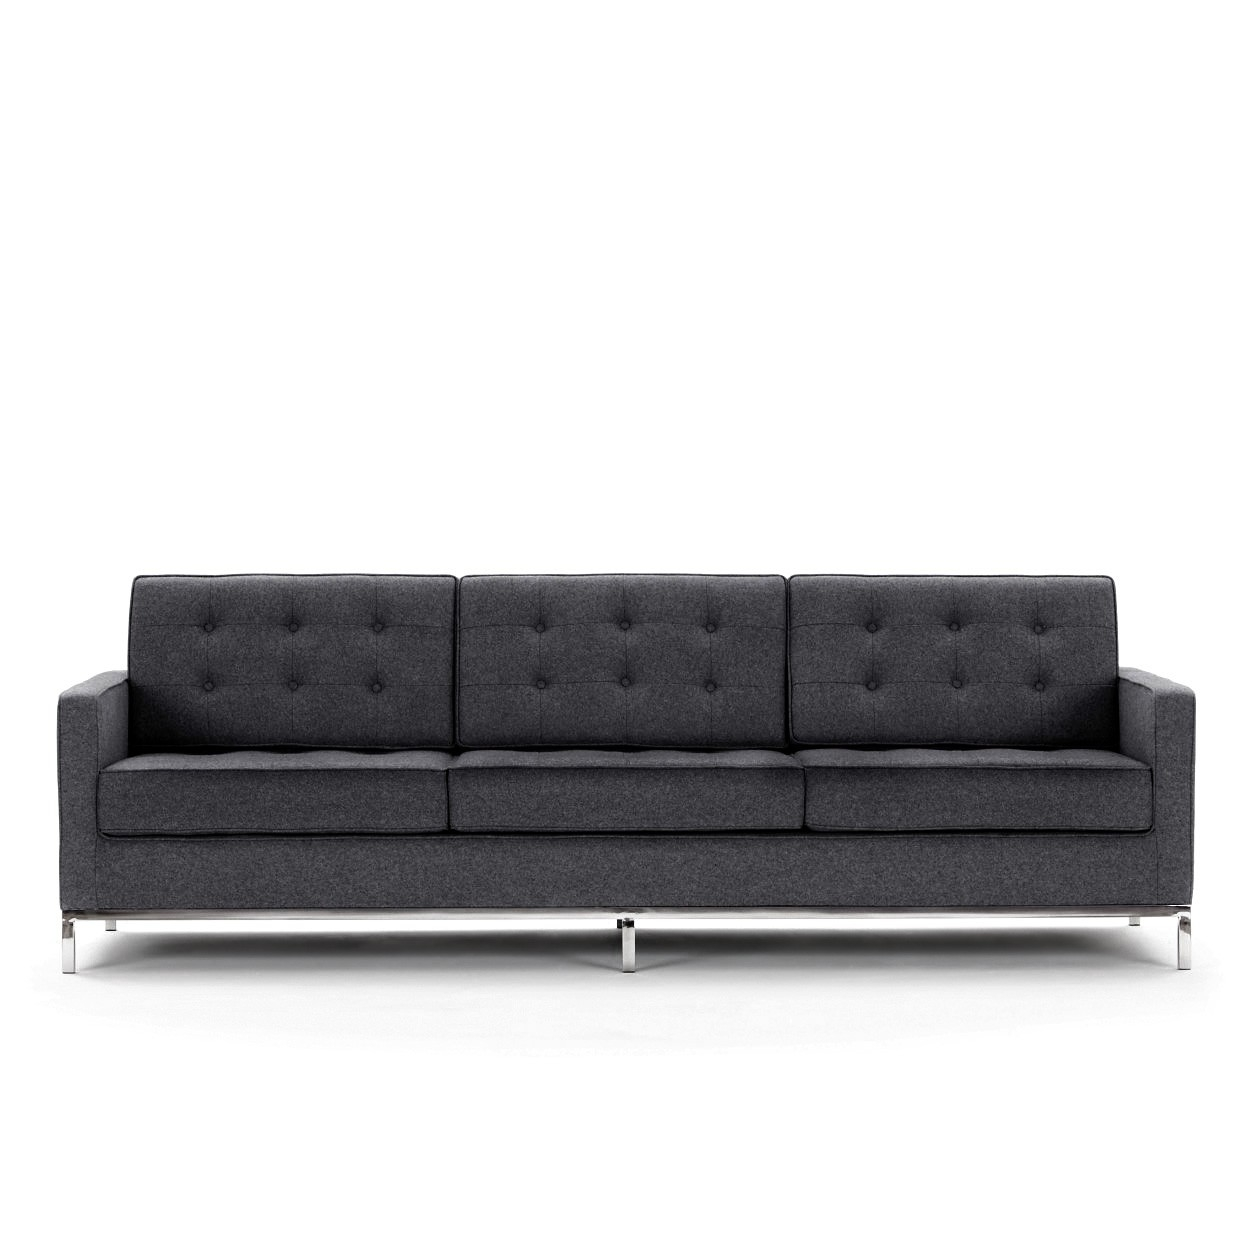 57 Florence Knoll Sofa For Modern Florence Knoll Sofa Fabric In Florence Knoll Fabric Sofas (Image 1 of 15)